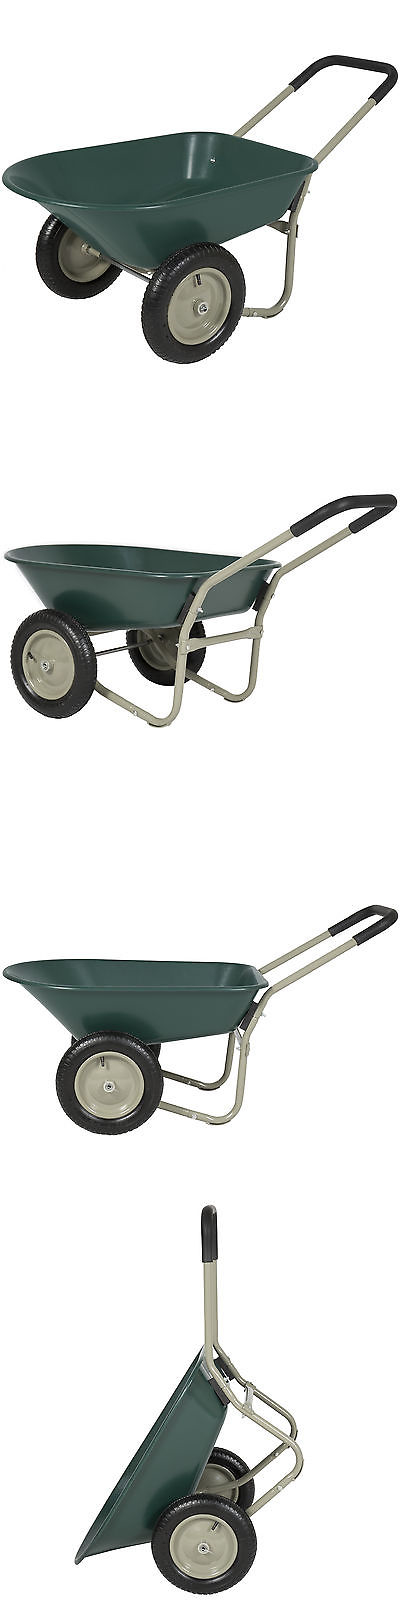 Wheelbarrows Carts and Wagons 75671: Best Choice Products Dual Wheel